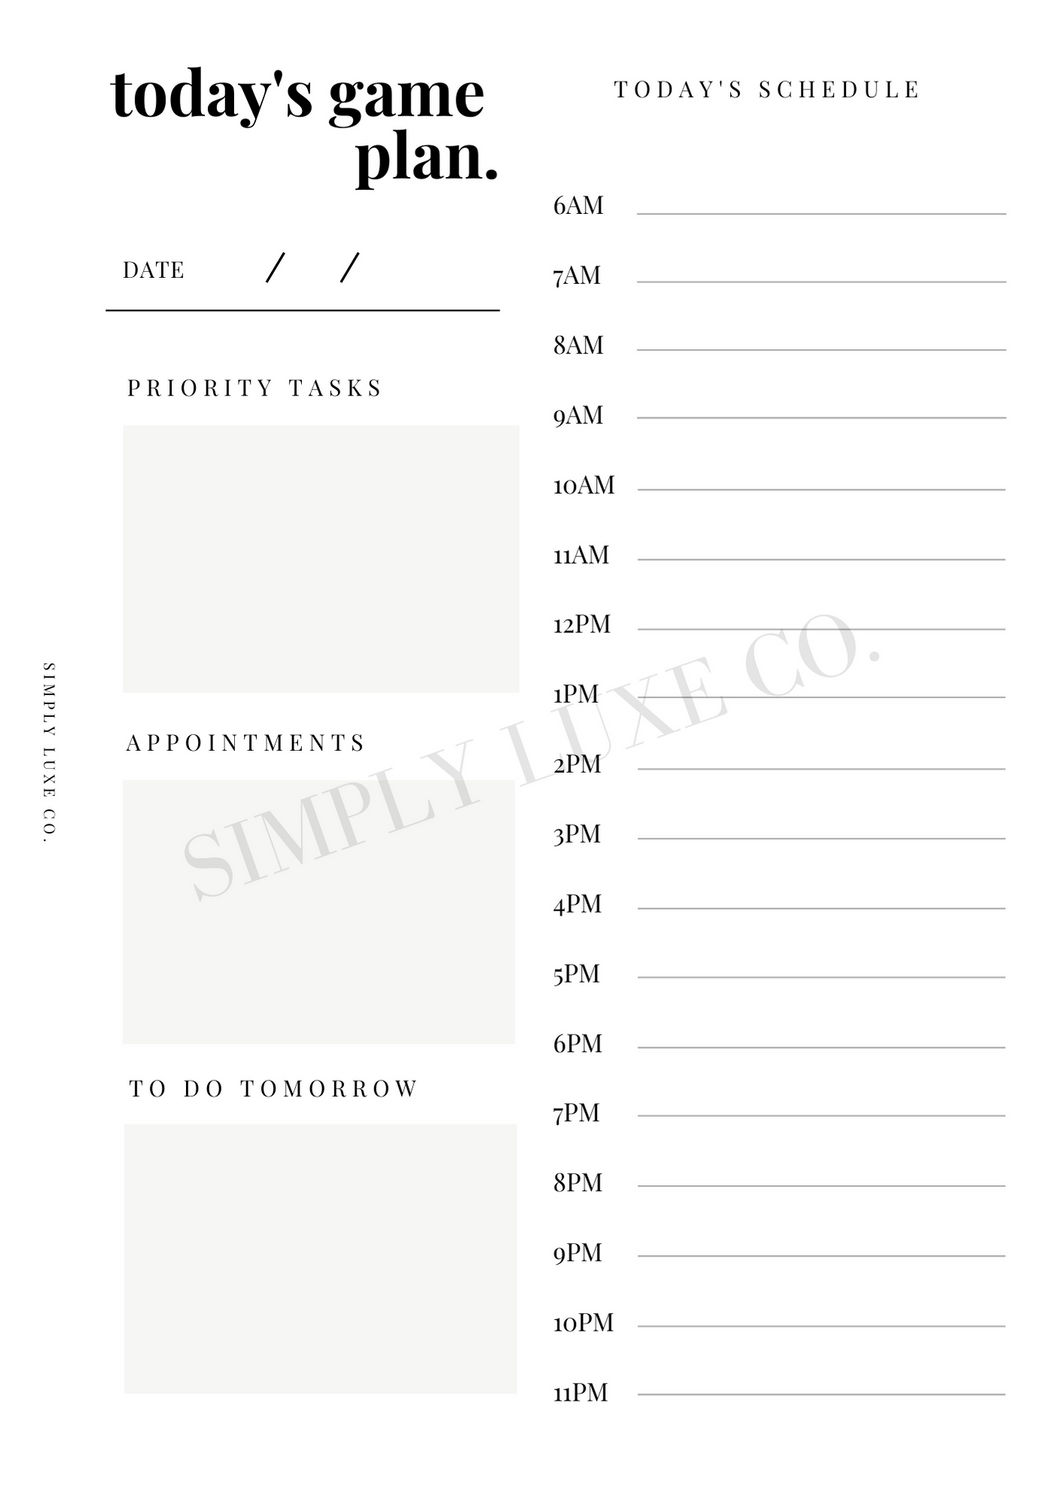 Today's Game Plan Printable Inserts - Available in 2 colors